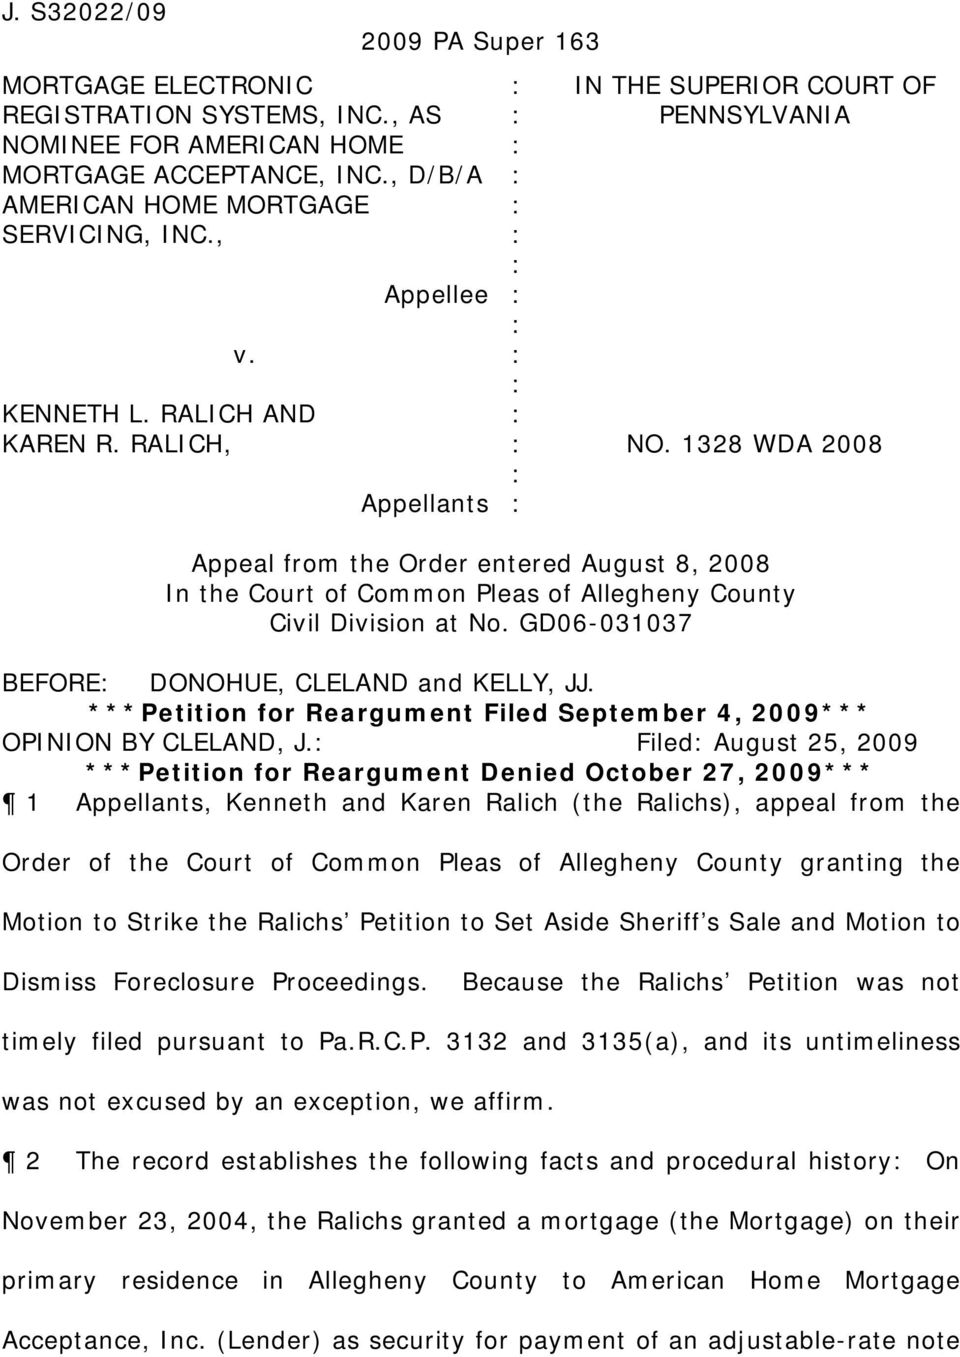 1328 WDA 2008 Appeal from the Order entered August 8, 2008 In the Court of Common Pleas of Allegheny County Civil Division at No. GD06-031037 BEFORE DONOHUE, CLELAND and KELLY, JJ.